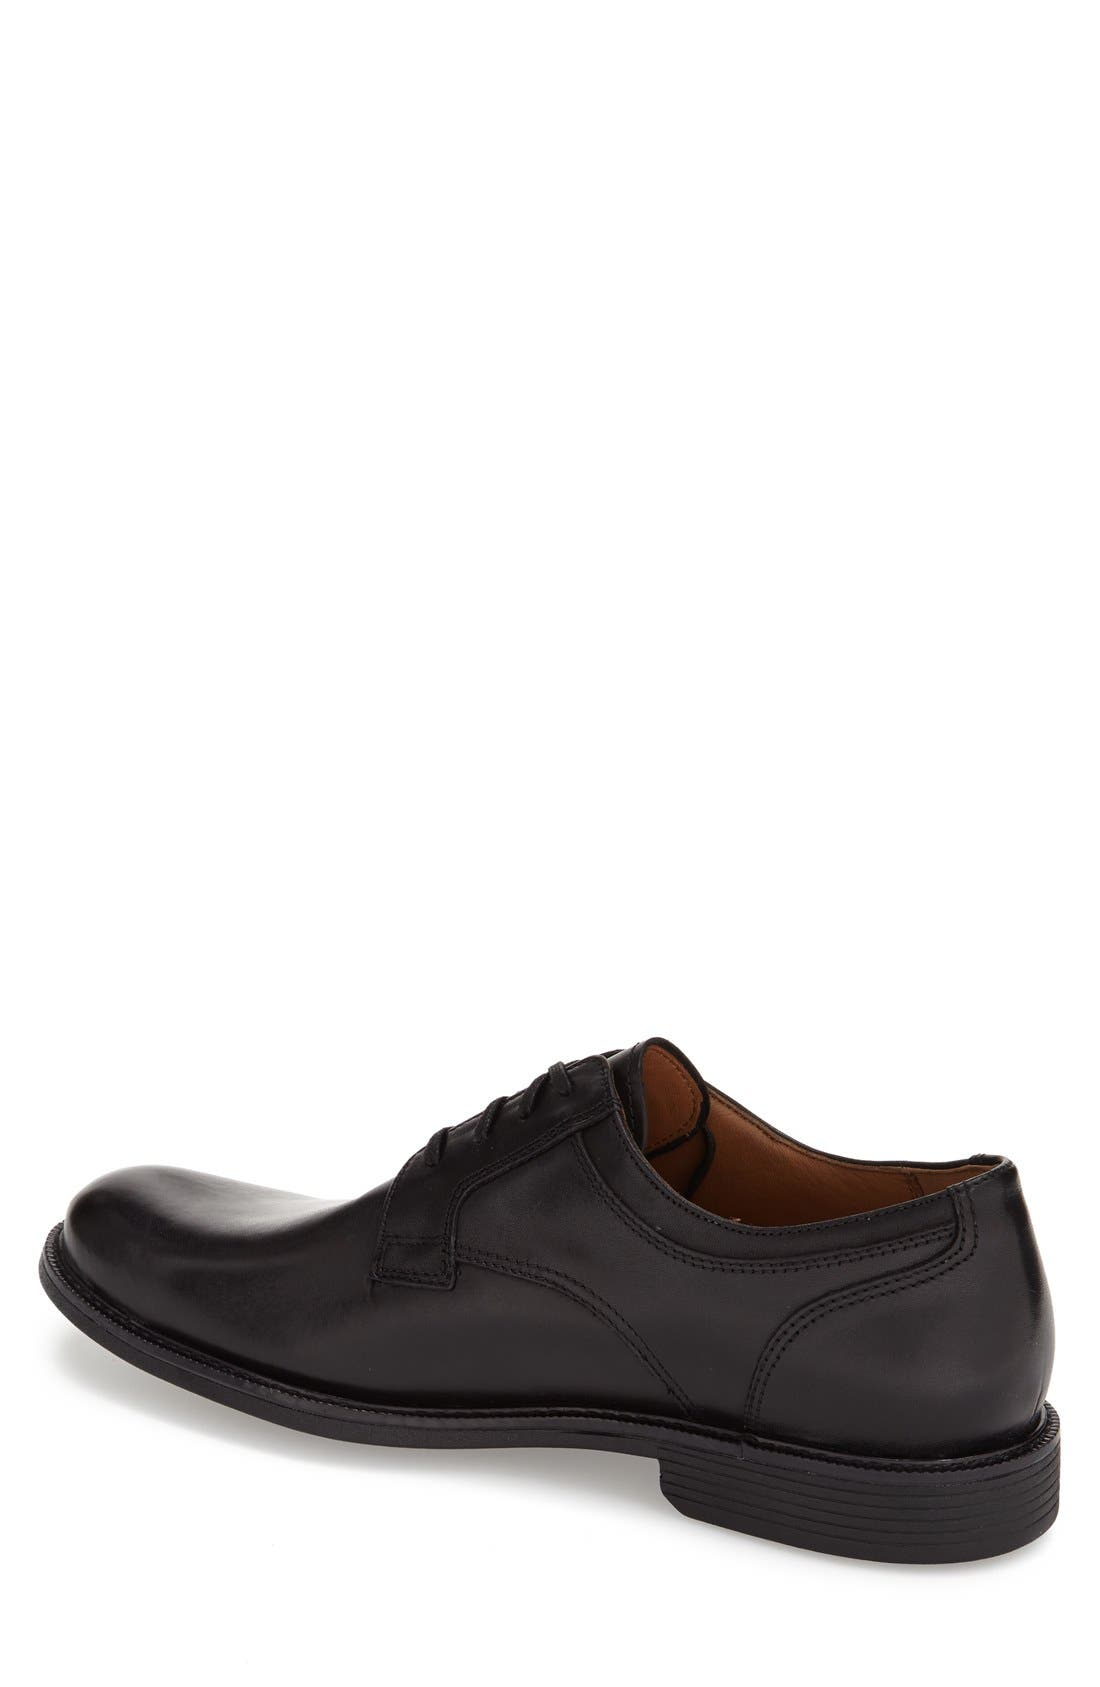 'Cardell' Plain Toe Derby,                             Alternate thumbnail 2, color,                             Black Leather